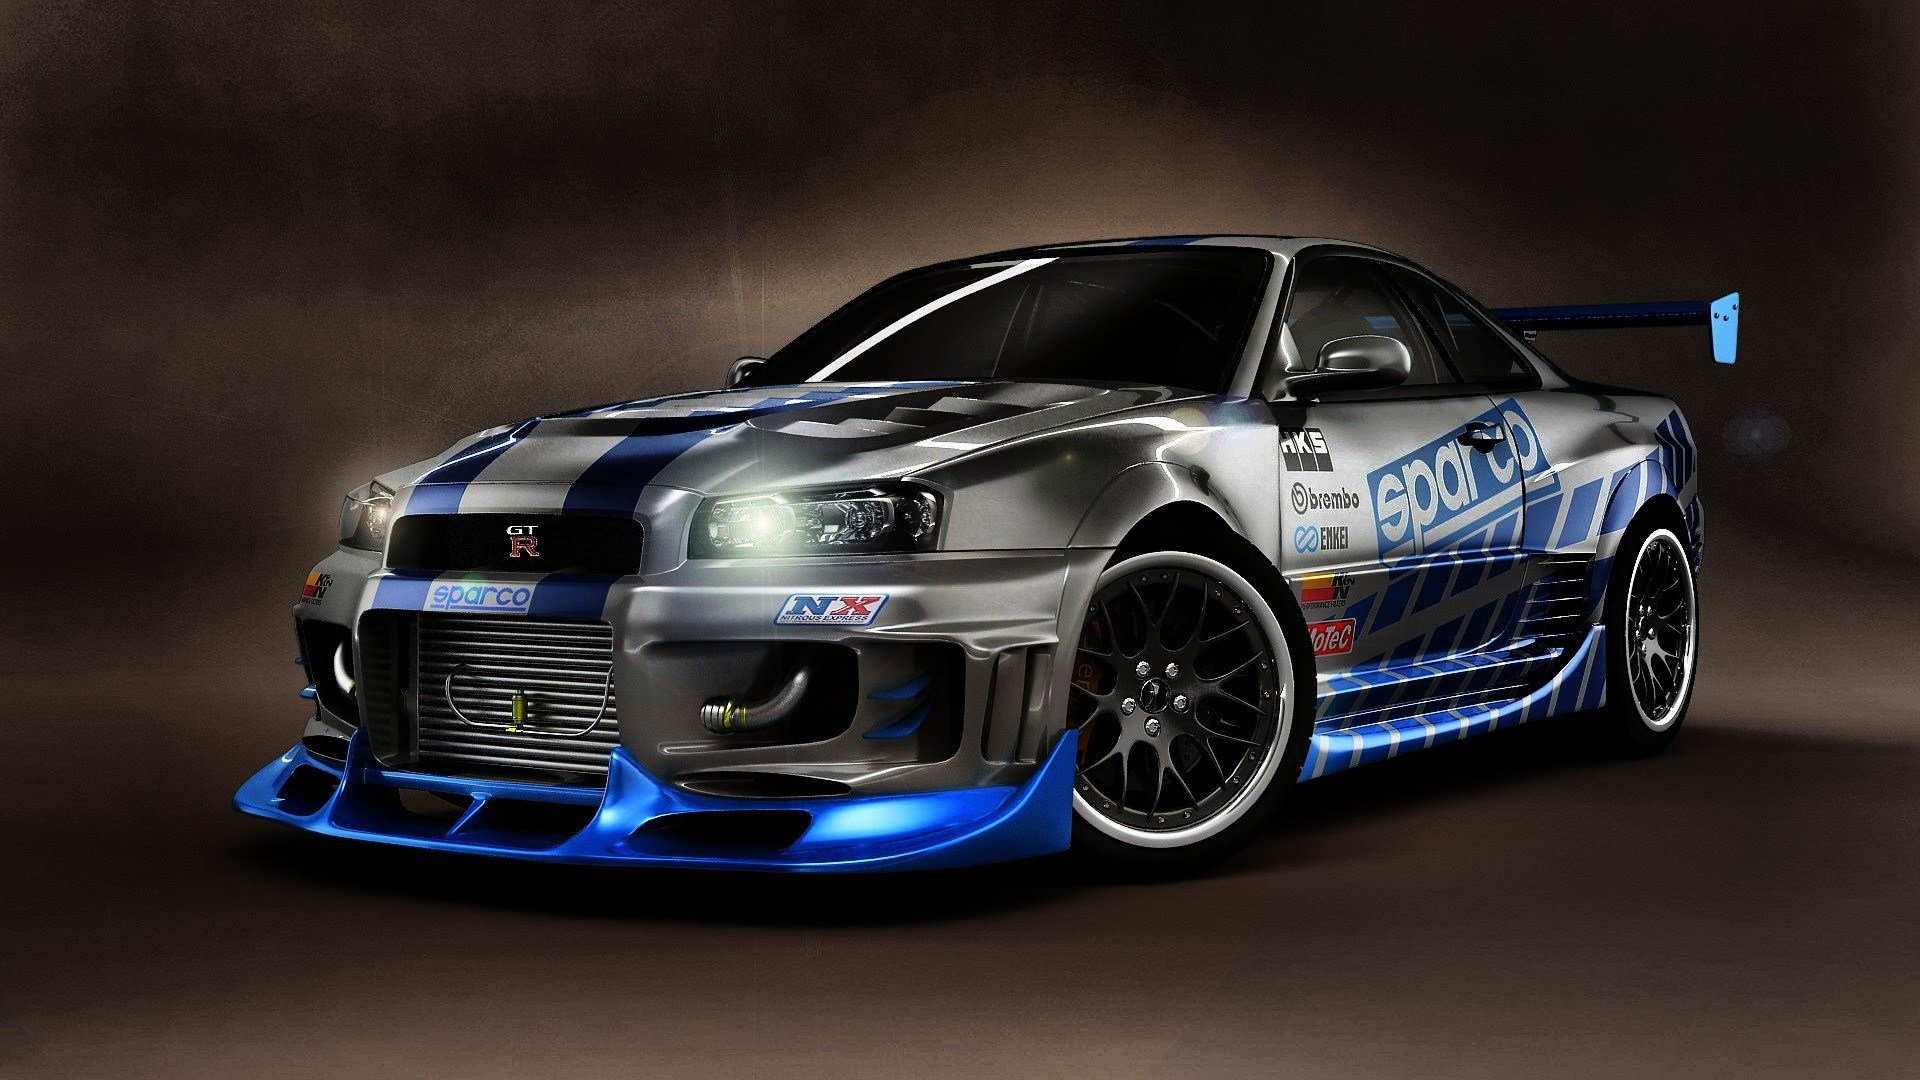 Latest Nissan Wallpapers Nissan Skyline Backgrounds For Download Free Download